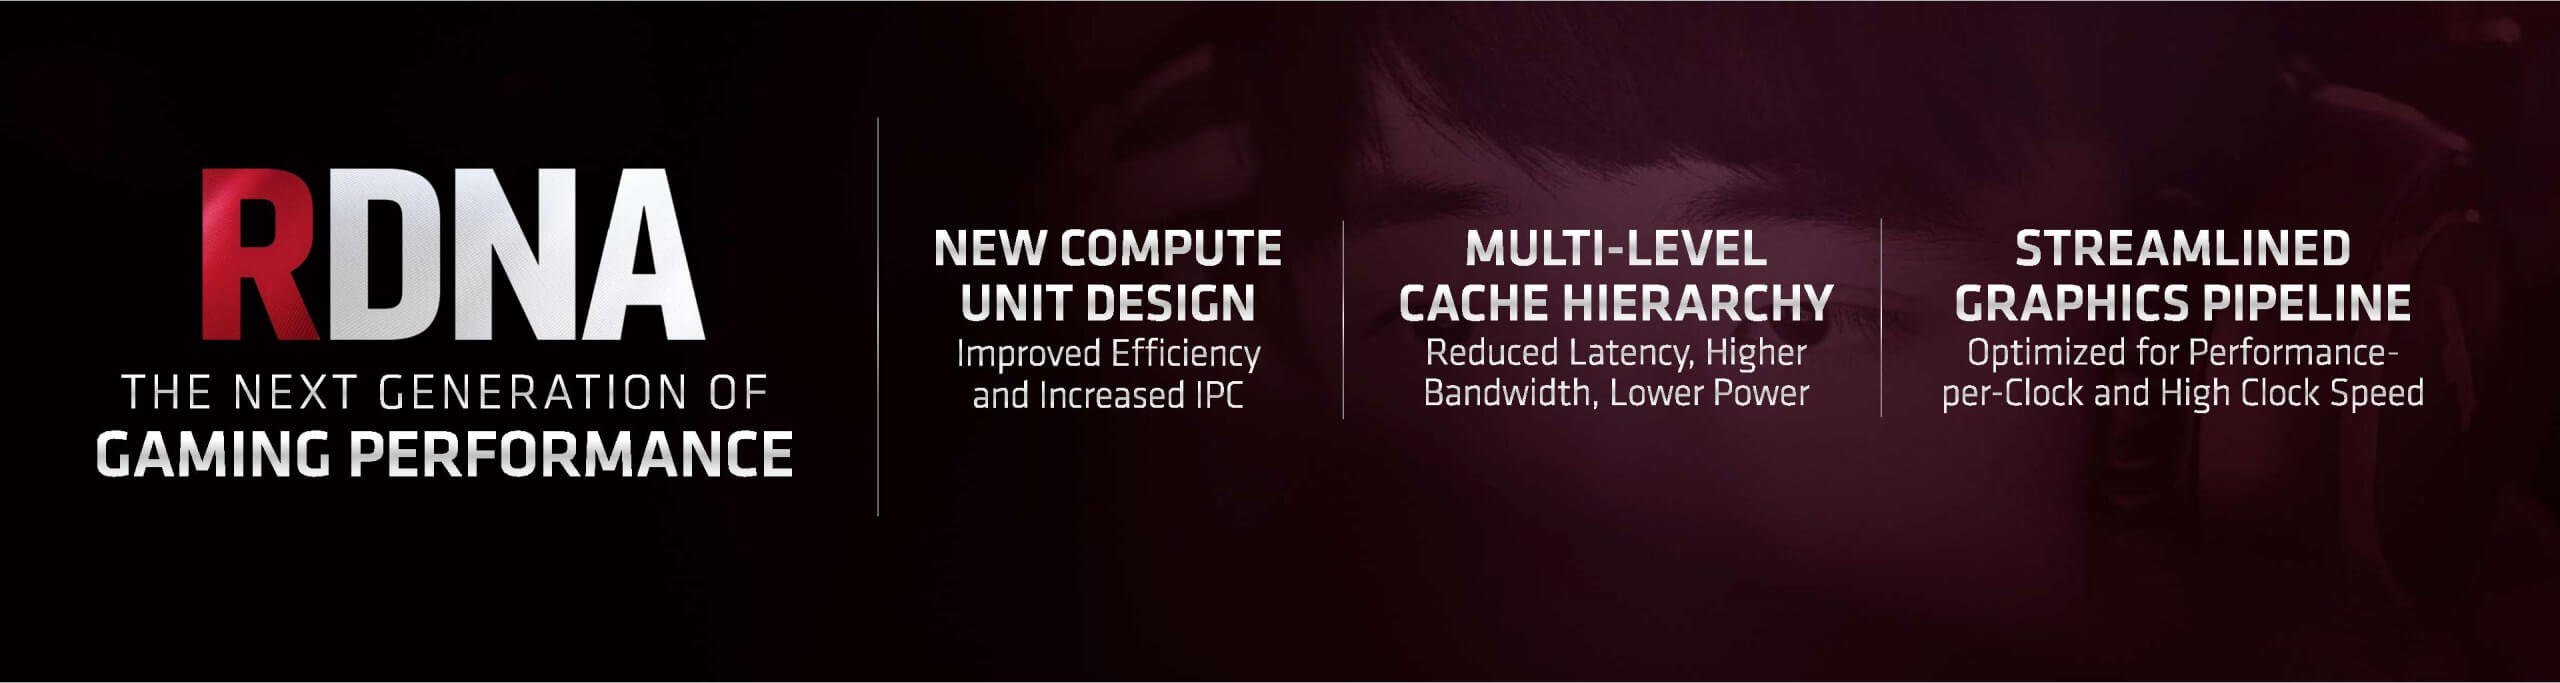 AMD's Navi GPU debuts in July with the Radeon RX 5700 series - TechSpot